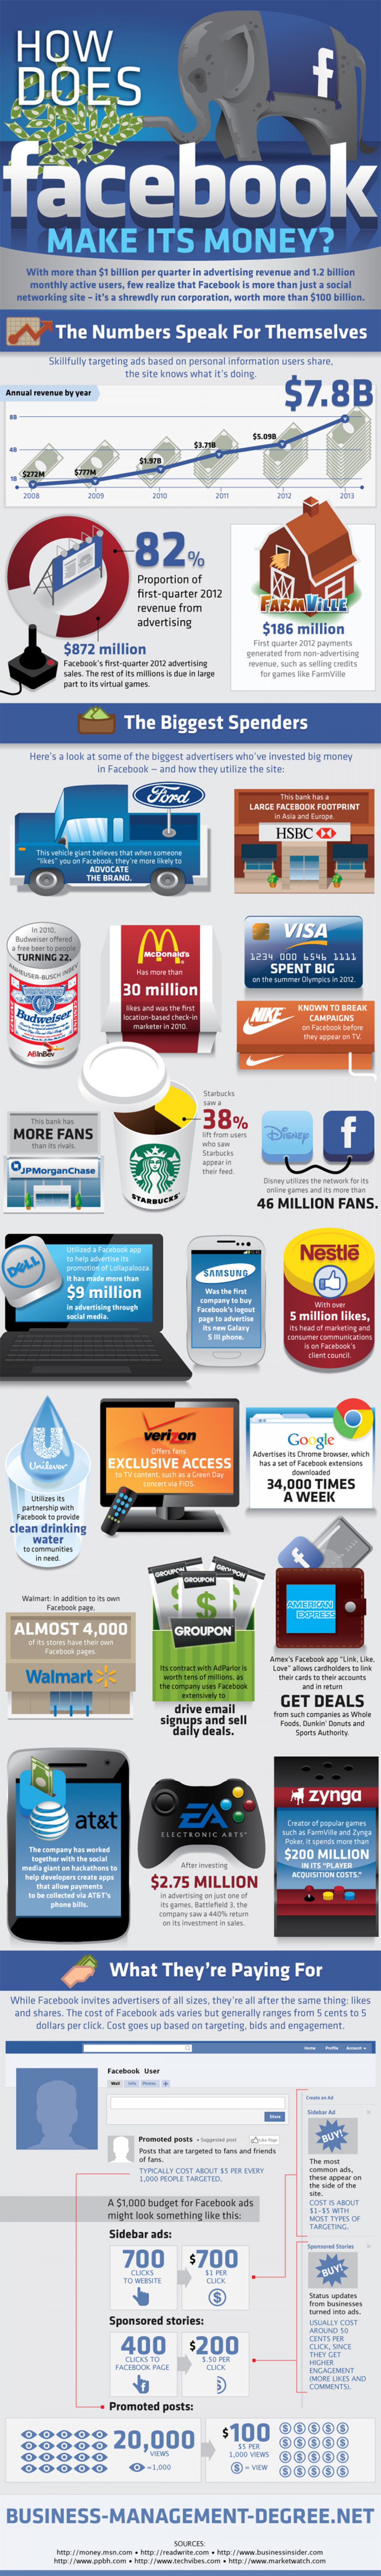 How Does Facebook Make its Money? Infographic